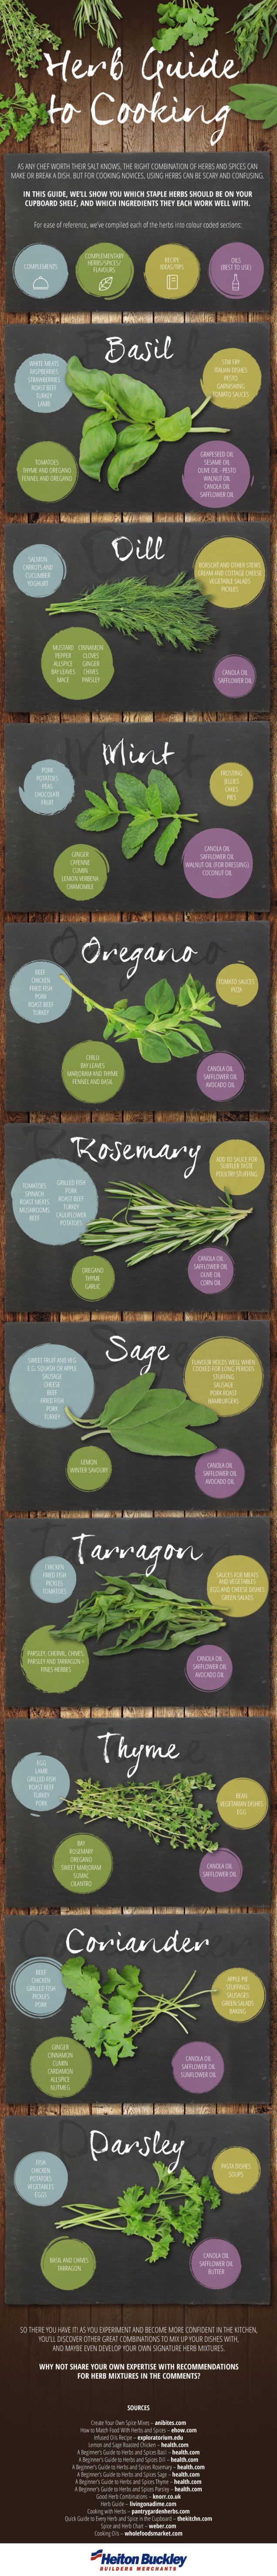 This Infographic Tells you How to Best Use Herbs in Your Cooking  #guida #tutorial #aromi    Modifica descrizione #food #wine #infographics #SOCIALidee #SocialEating #Italia #SocialEatingITALIA #HomeRestaurant #consulenza #socialtips